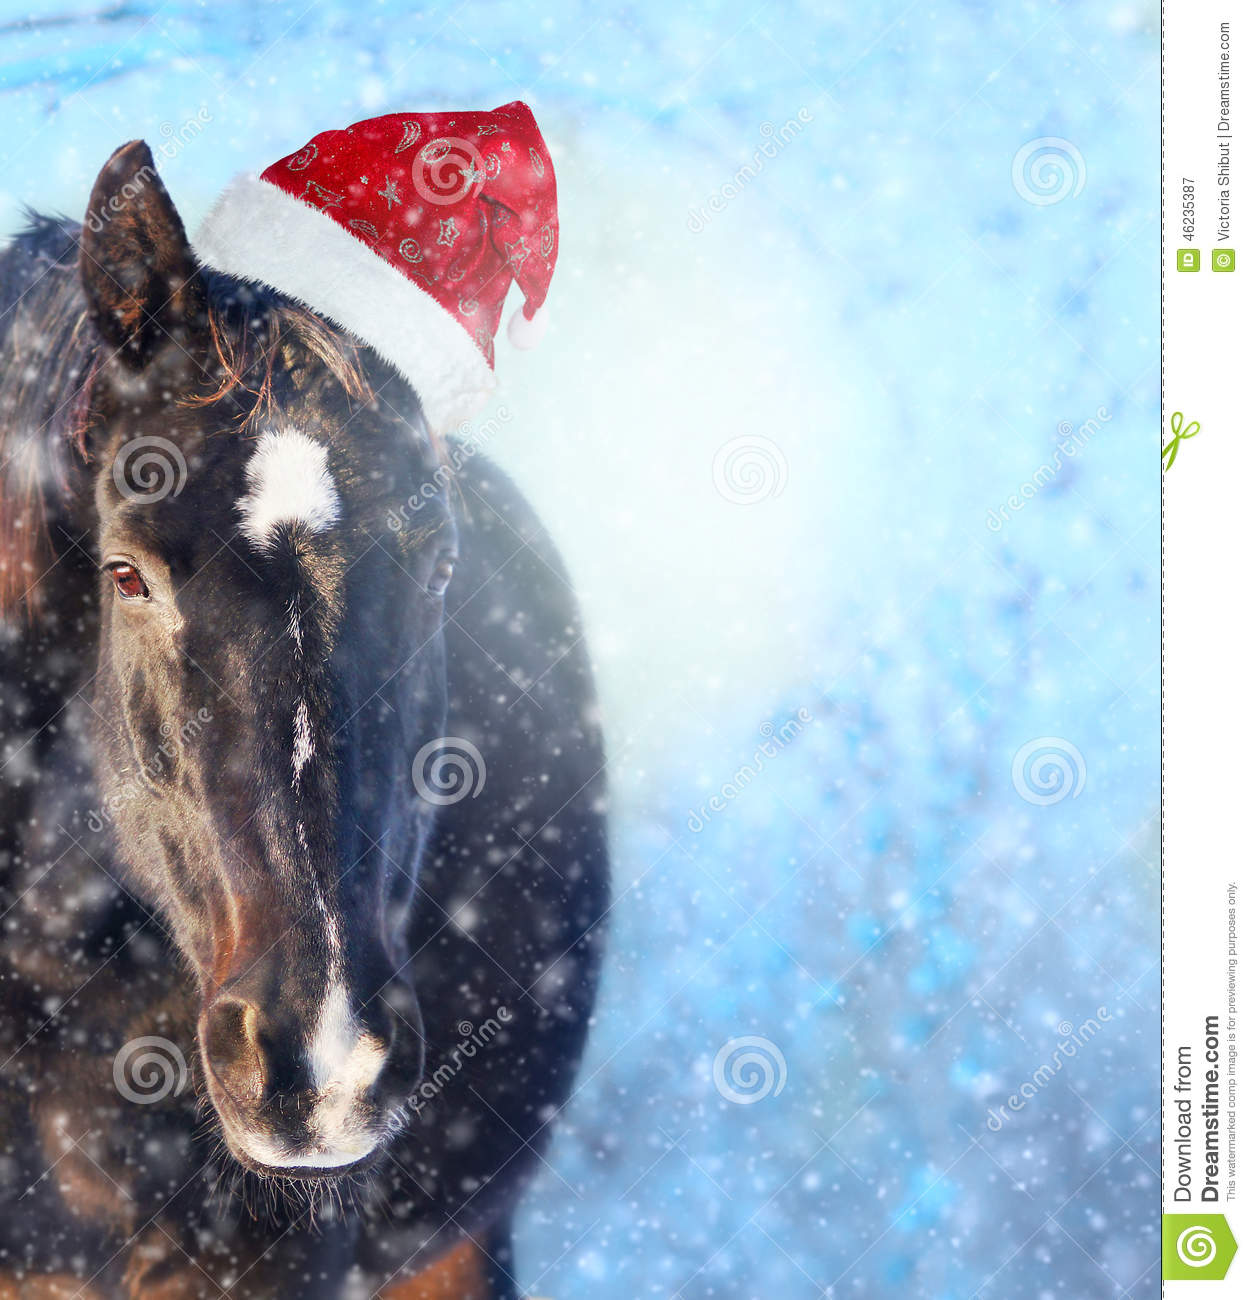 Horse With Santa Hat In Showfall Christmas Background